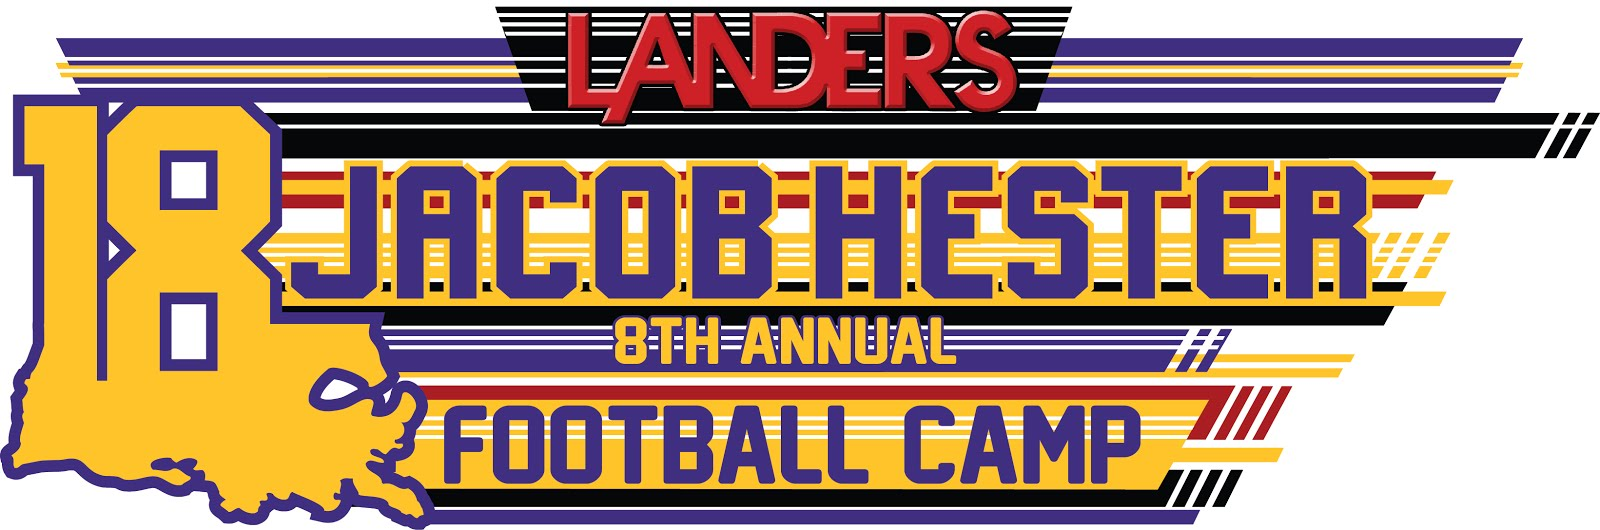 FOOTBALL CAMP REGISTRATION GOING ON NOW!